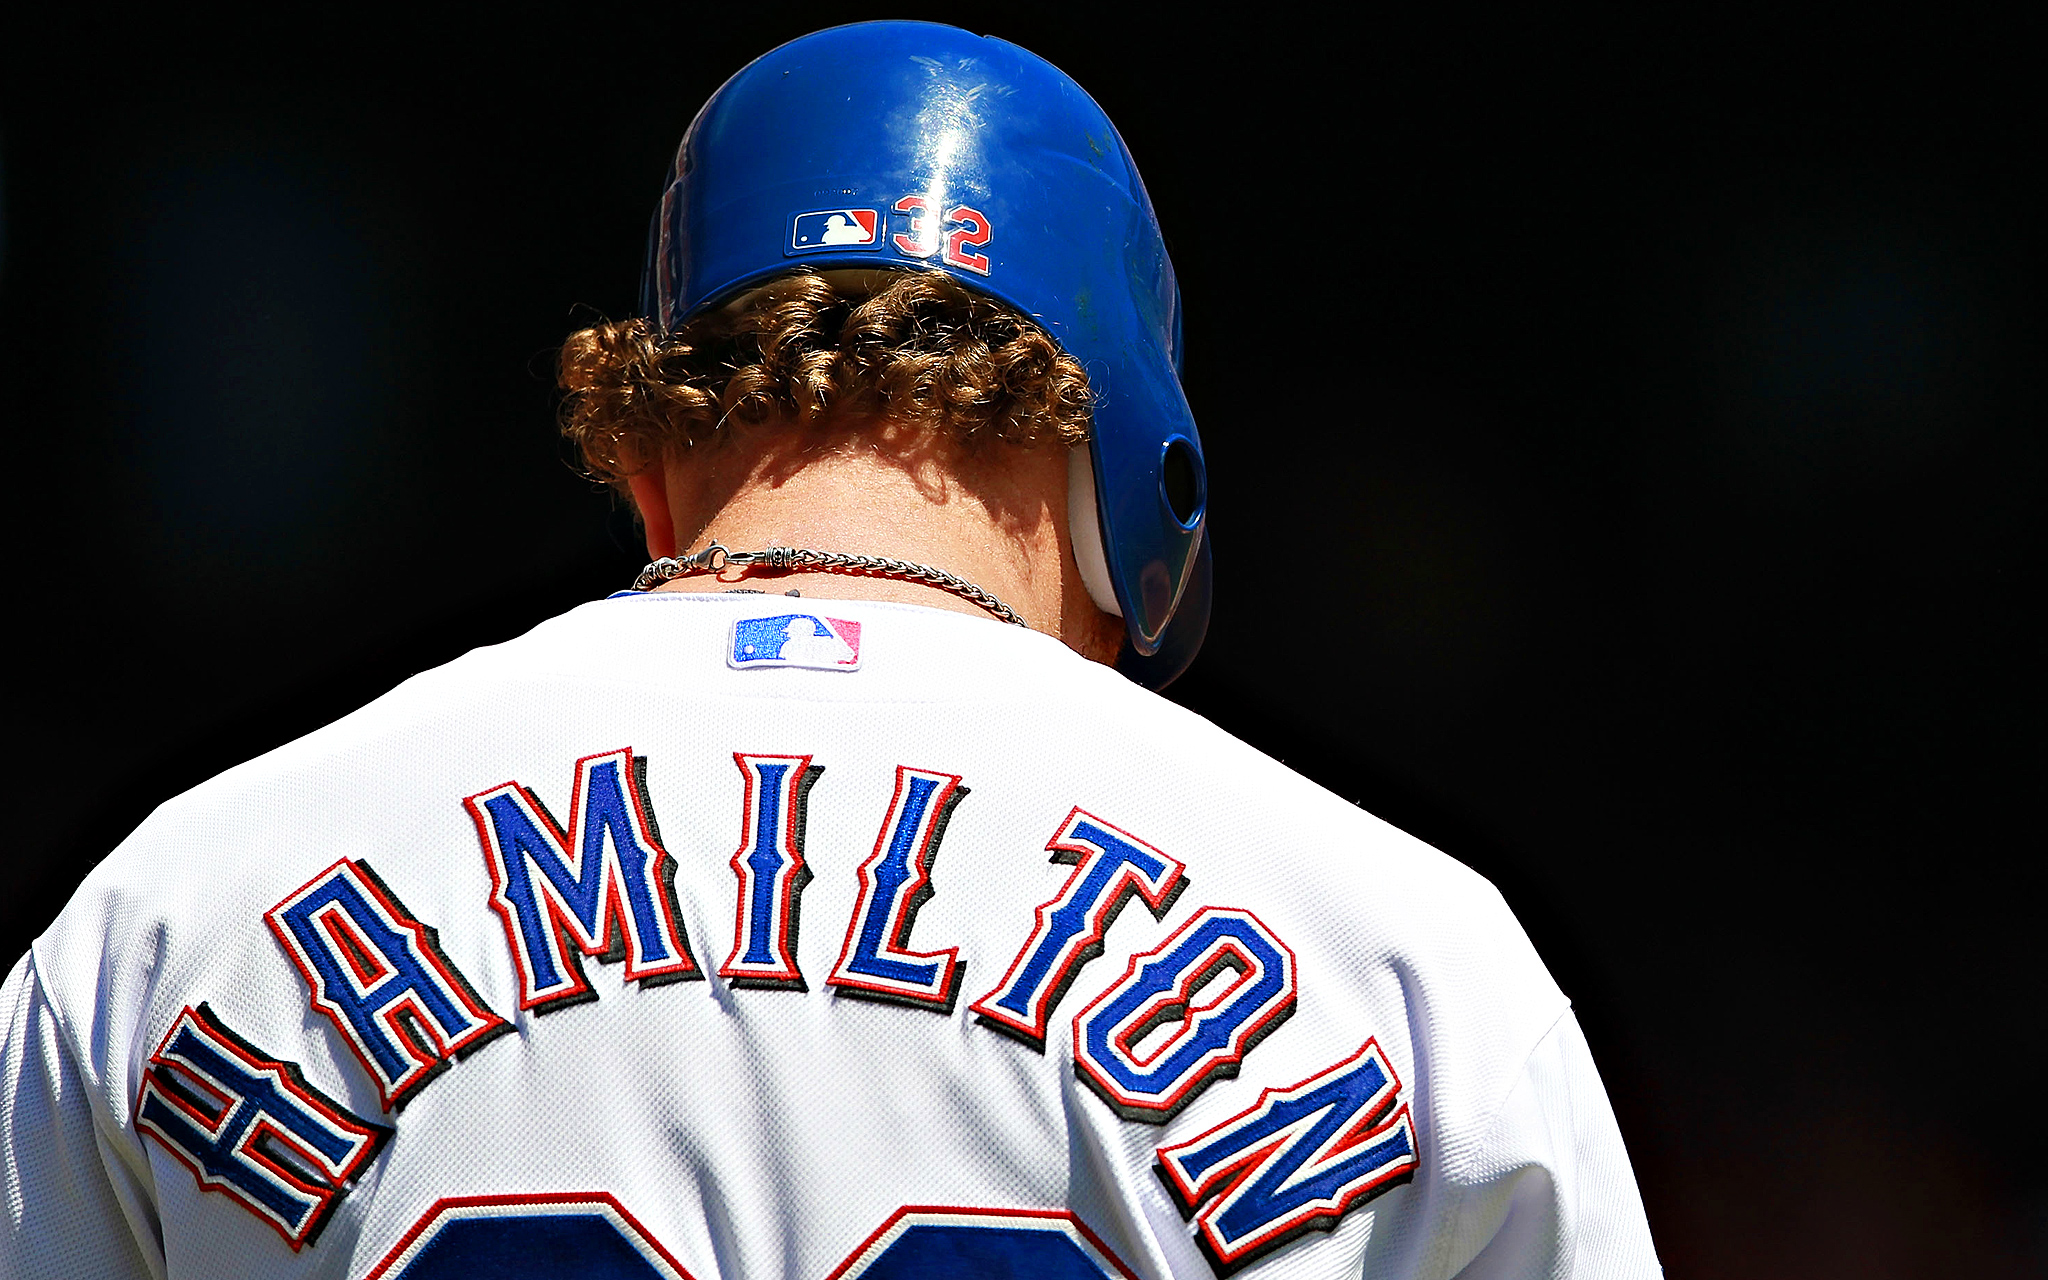 wallpaper.wiki-josh-hamilton-texas-rangers-hd-wallpapers-pic